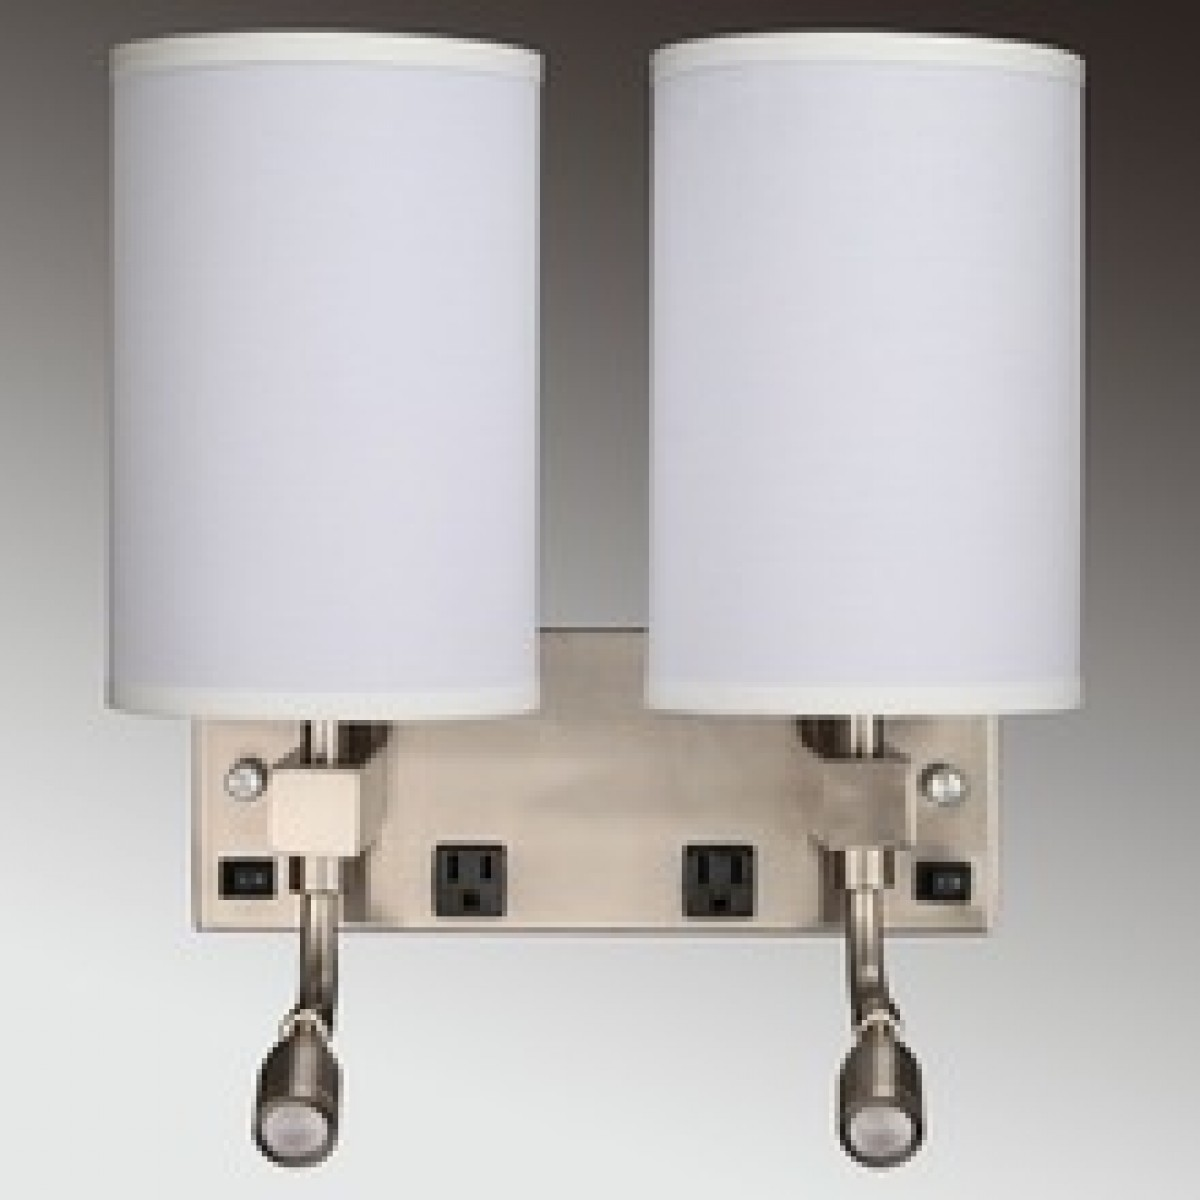 Hotel Guest Room Wall Light Sconce Lamp Fabric And Burshed Nickle With Outlet Usb And Switch 511201815126